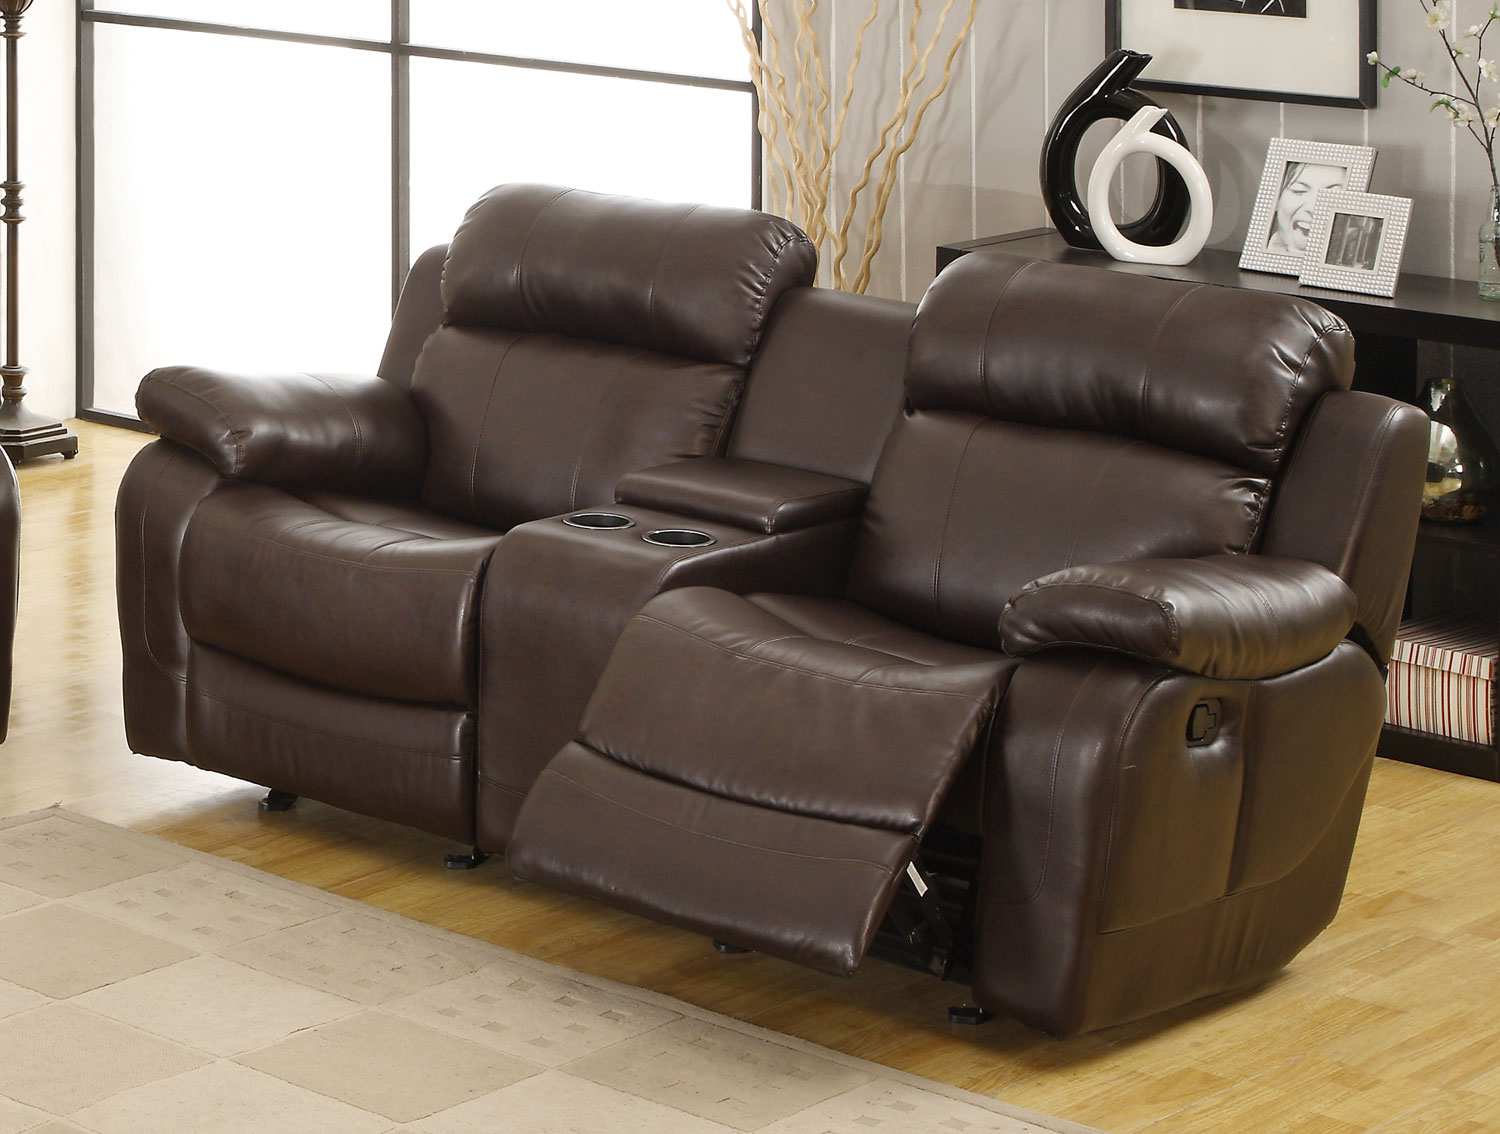 Tremendous Homelegance Marille Love Seat Glider Recliner With Center Console Dark Brown Bonded Leather Match Ncnpc Chair Design For Home Ncnpcorg